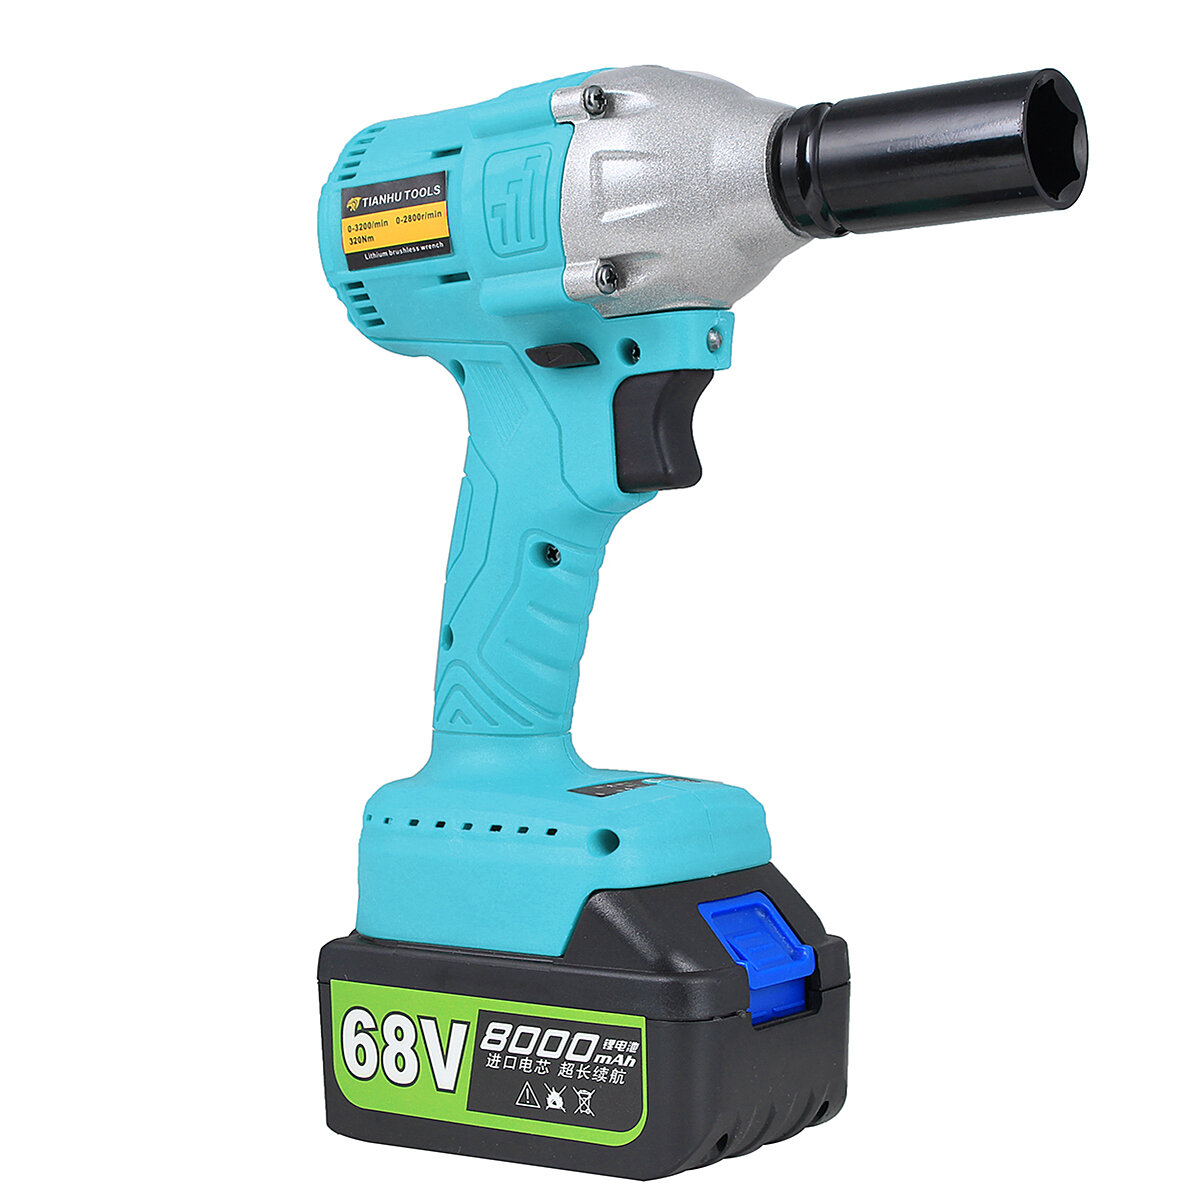 8000mah 68v Lithium Ion Brushless Cordless High Torque Square Drive Impact Wrench Cod